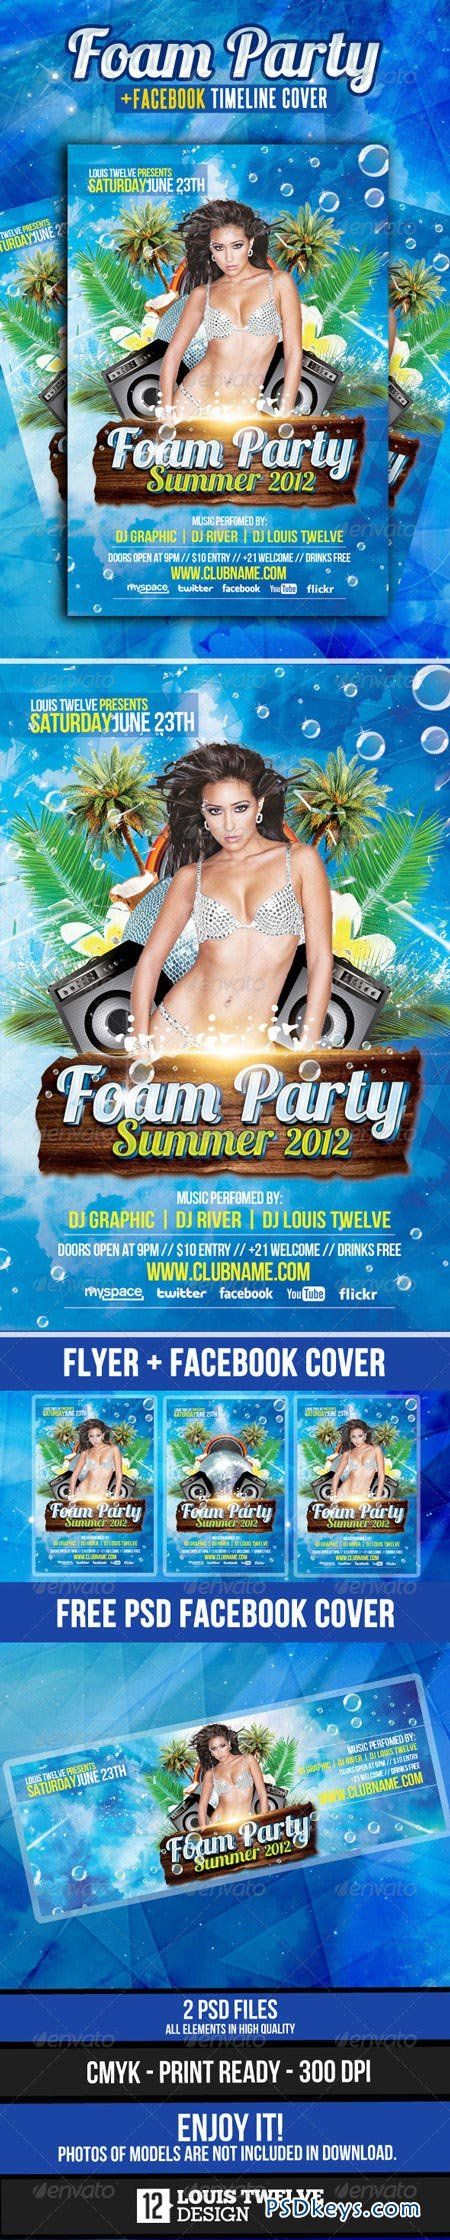 Foam Party Summer Flyer with Facebook Cover 2459231